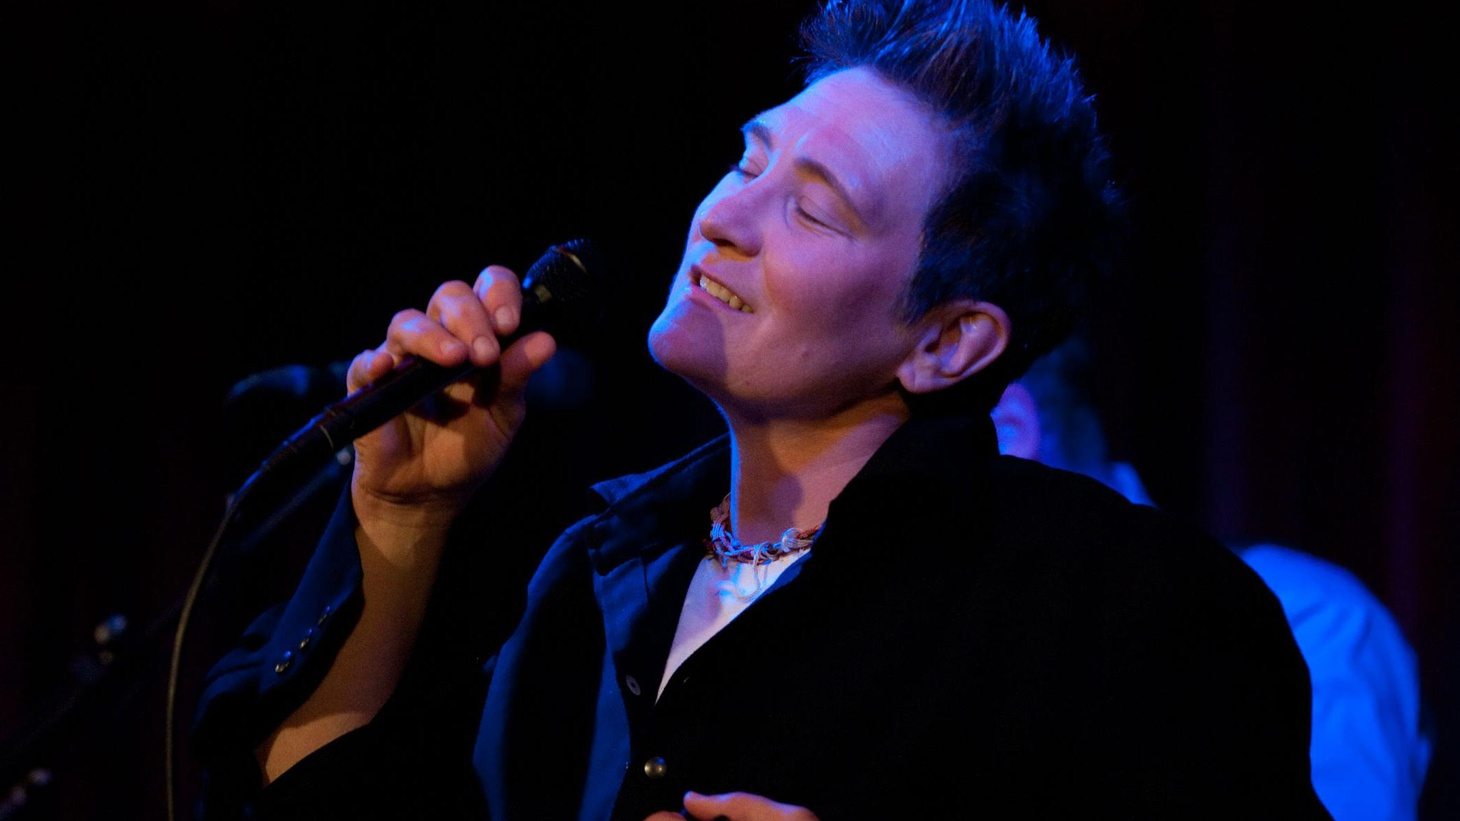 Canadian chanteuse k.d. lang and her band showcase songs from the record Sing it Loud at Apogee Studio.